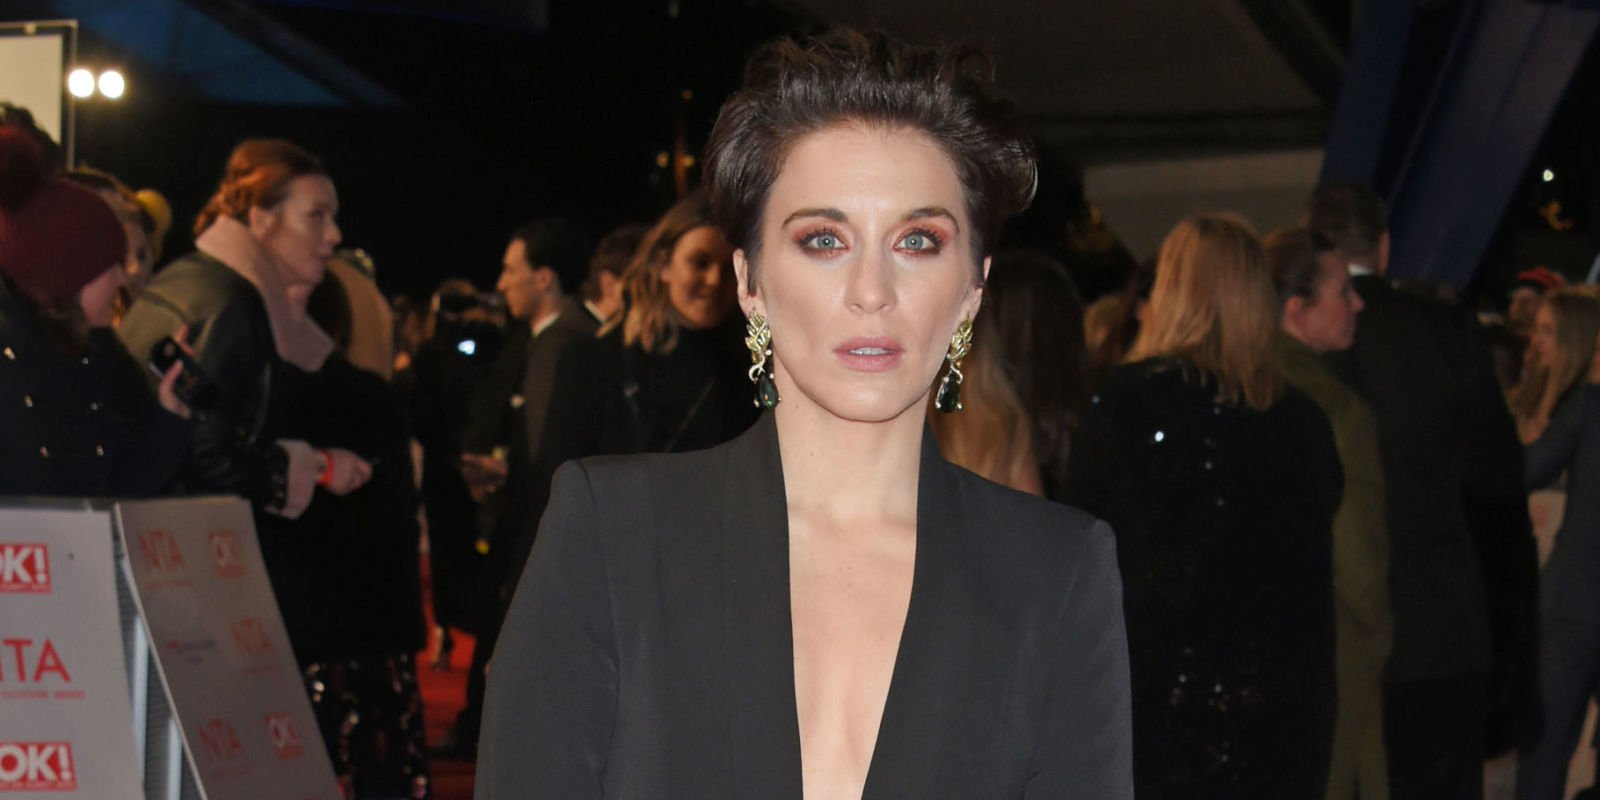 Line of Duty's Vicky McClure and Daniel Mays will star in BBC Two drama about the 1993 Warrington bombing